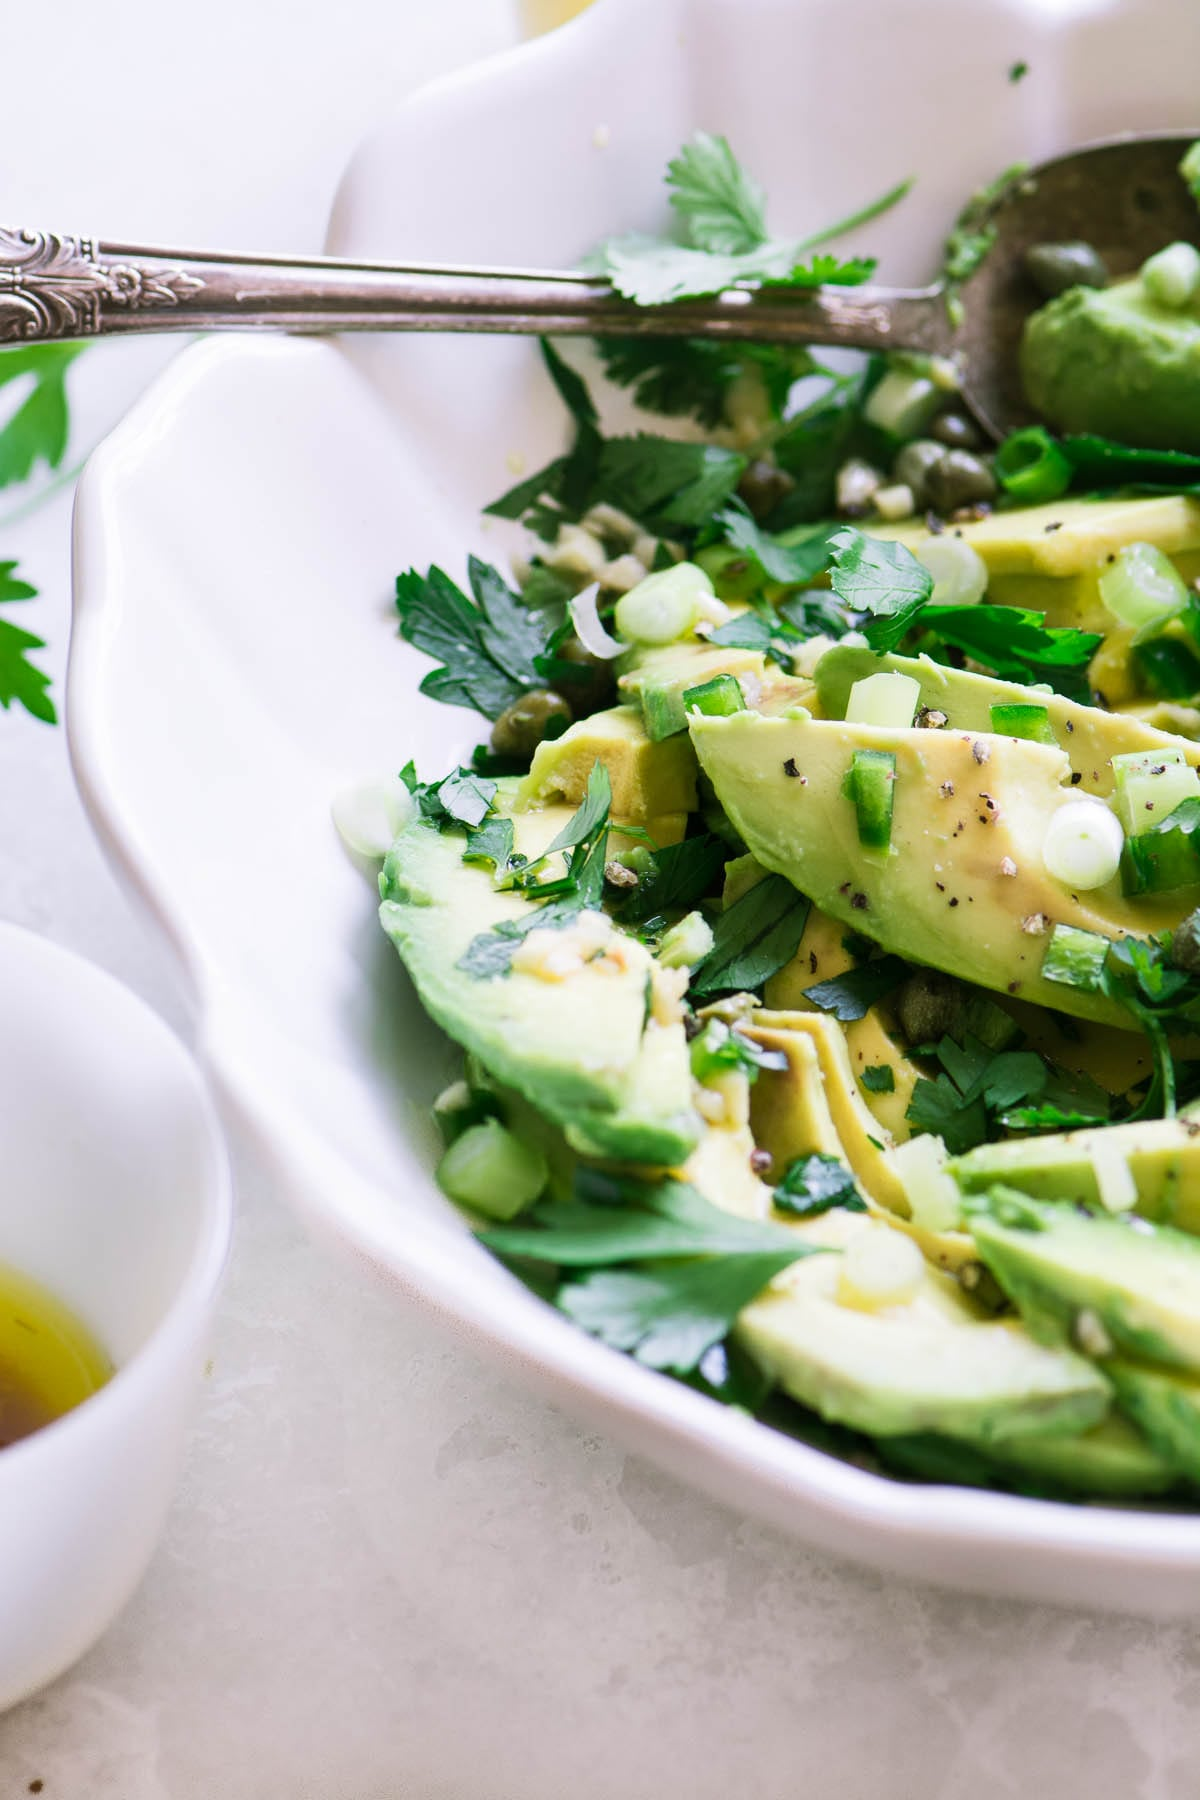 avocado and herb salad in a white bowl